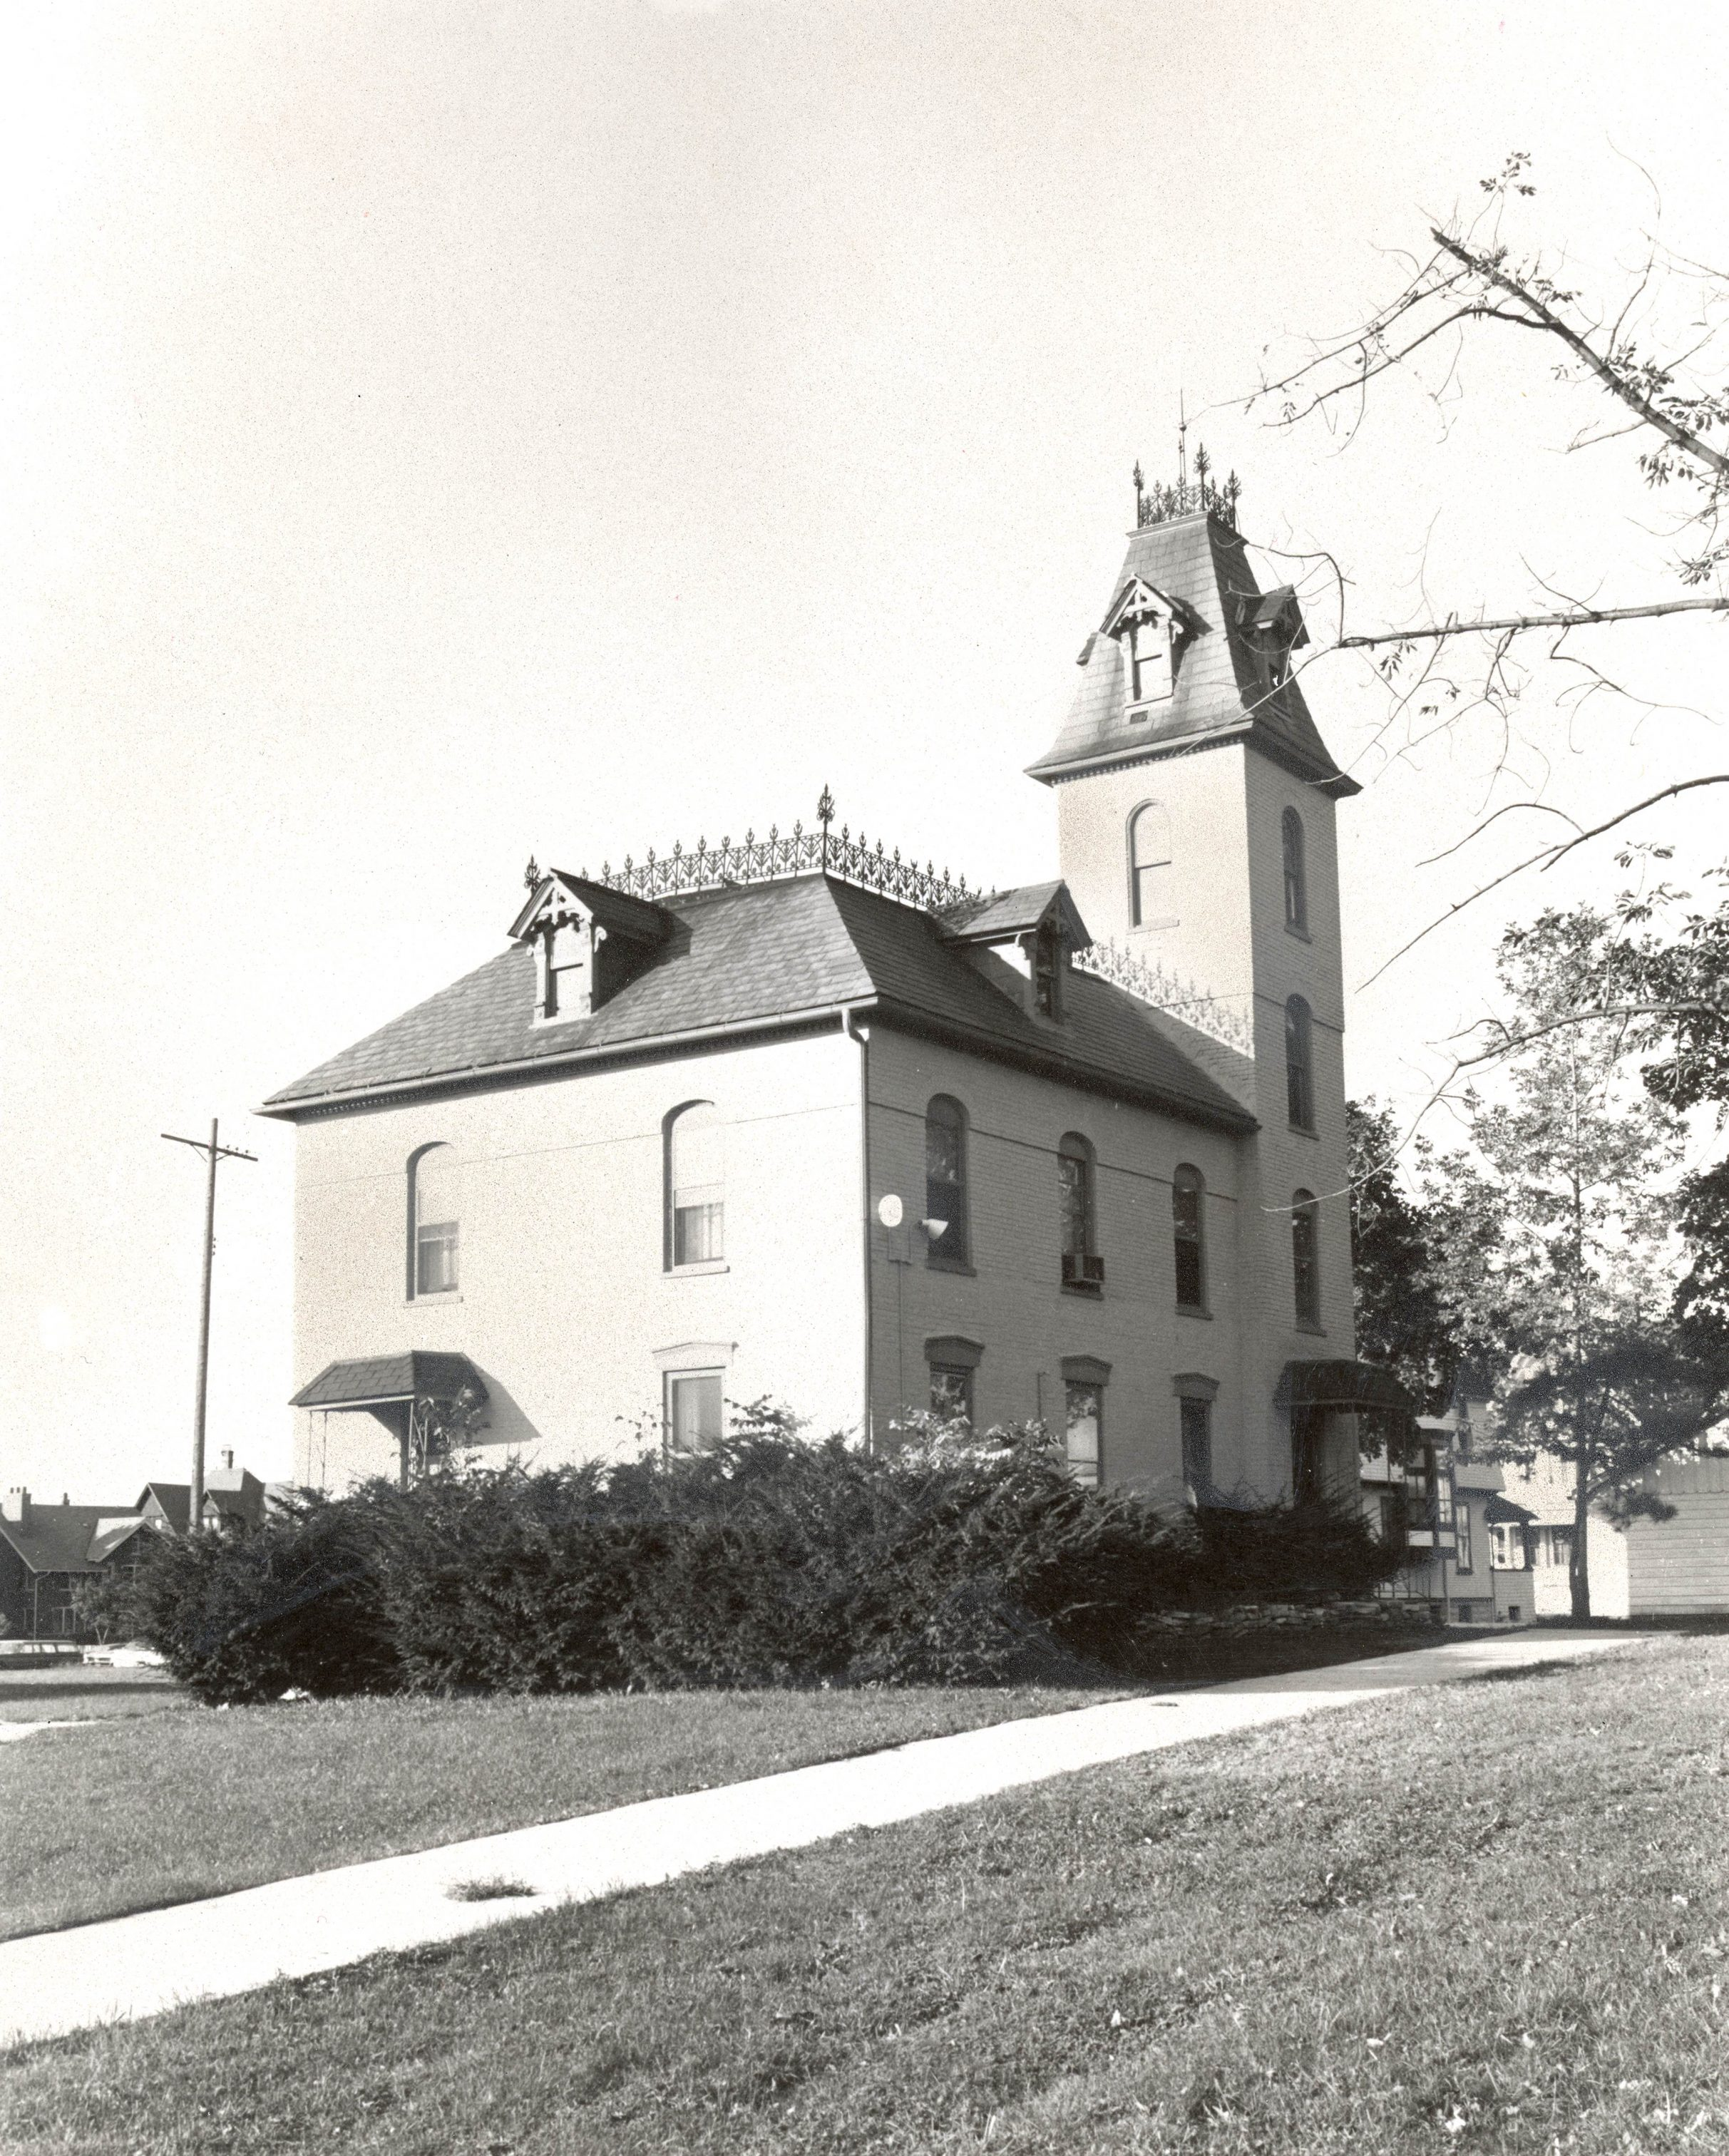 Pictured here in 1974, the Robert Faries Residence on State Street was built around 1850 for Robert Faries, who is believed to be Wisconsin's first dentist. It has had a series of owners, including Concordia College, and is currently privately owned.